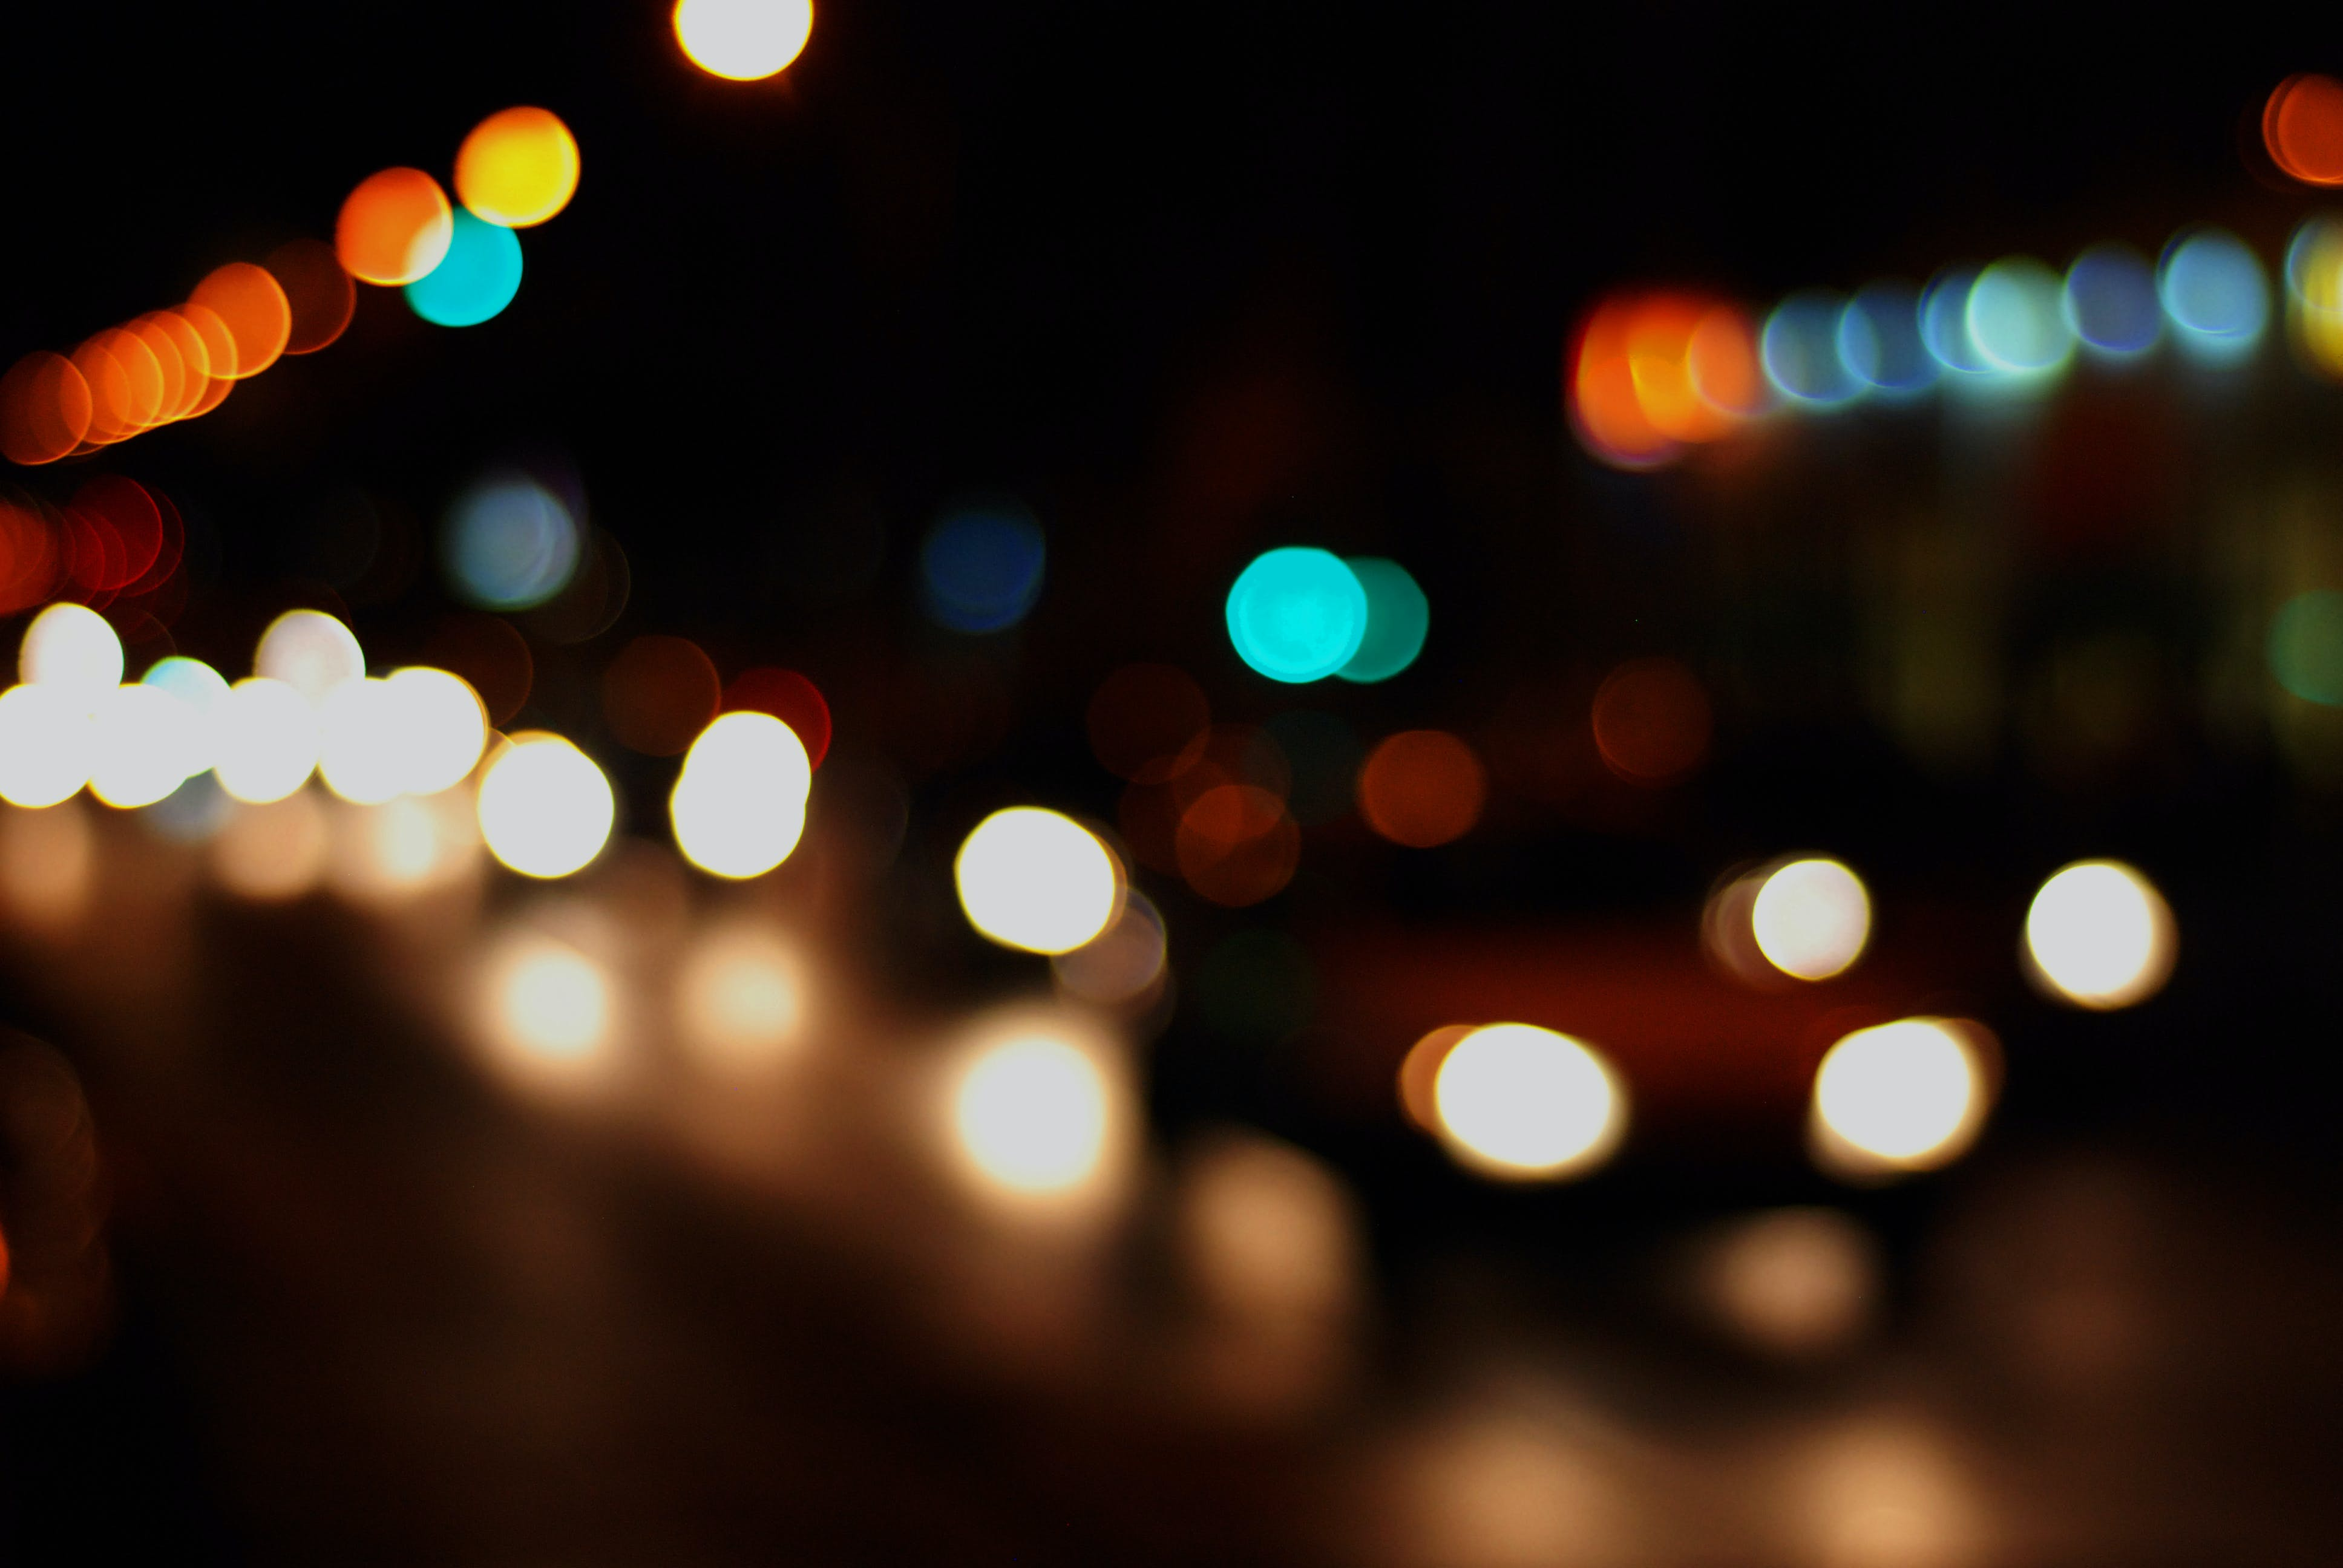 Free stock photo of lights, bokeh, blurred